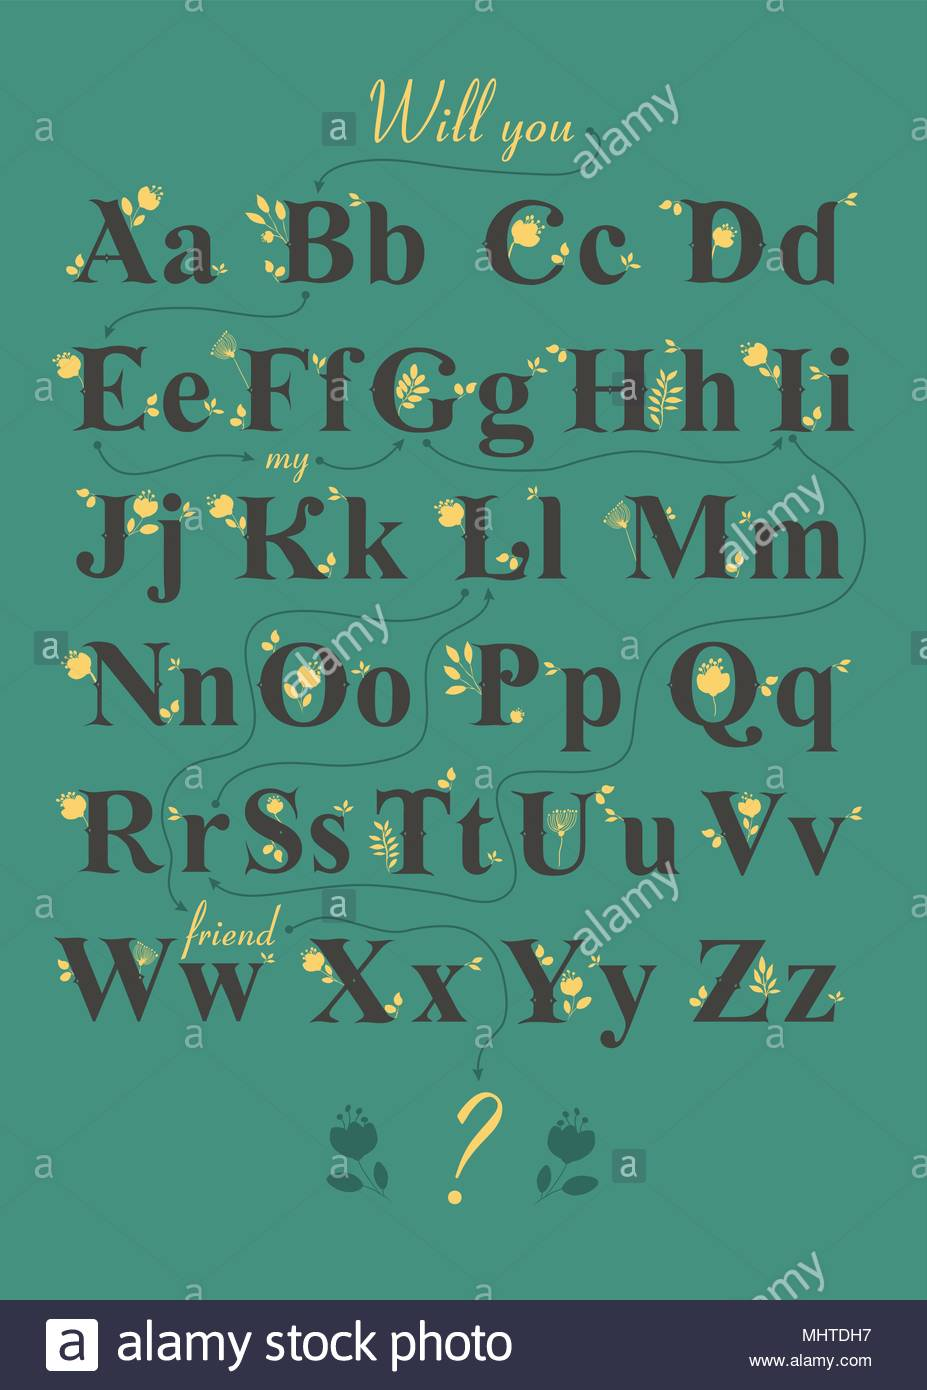 Artistic Alphabet With Encrypted Romantic Message Will You Be My